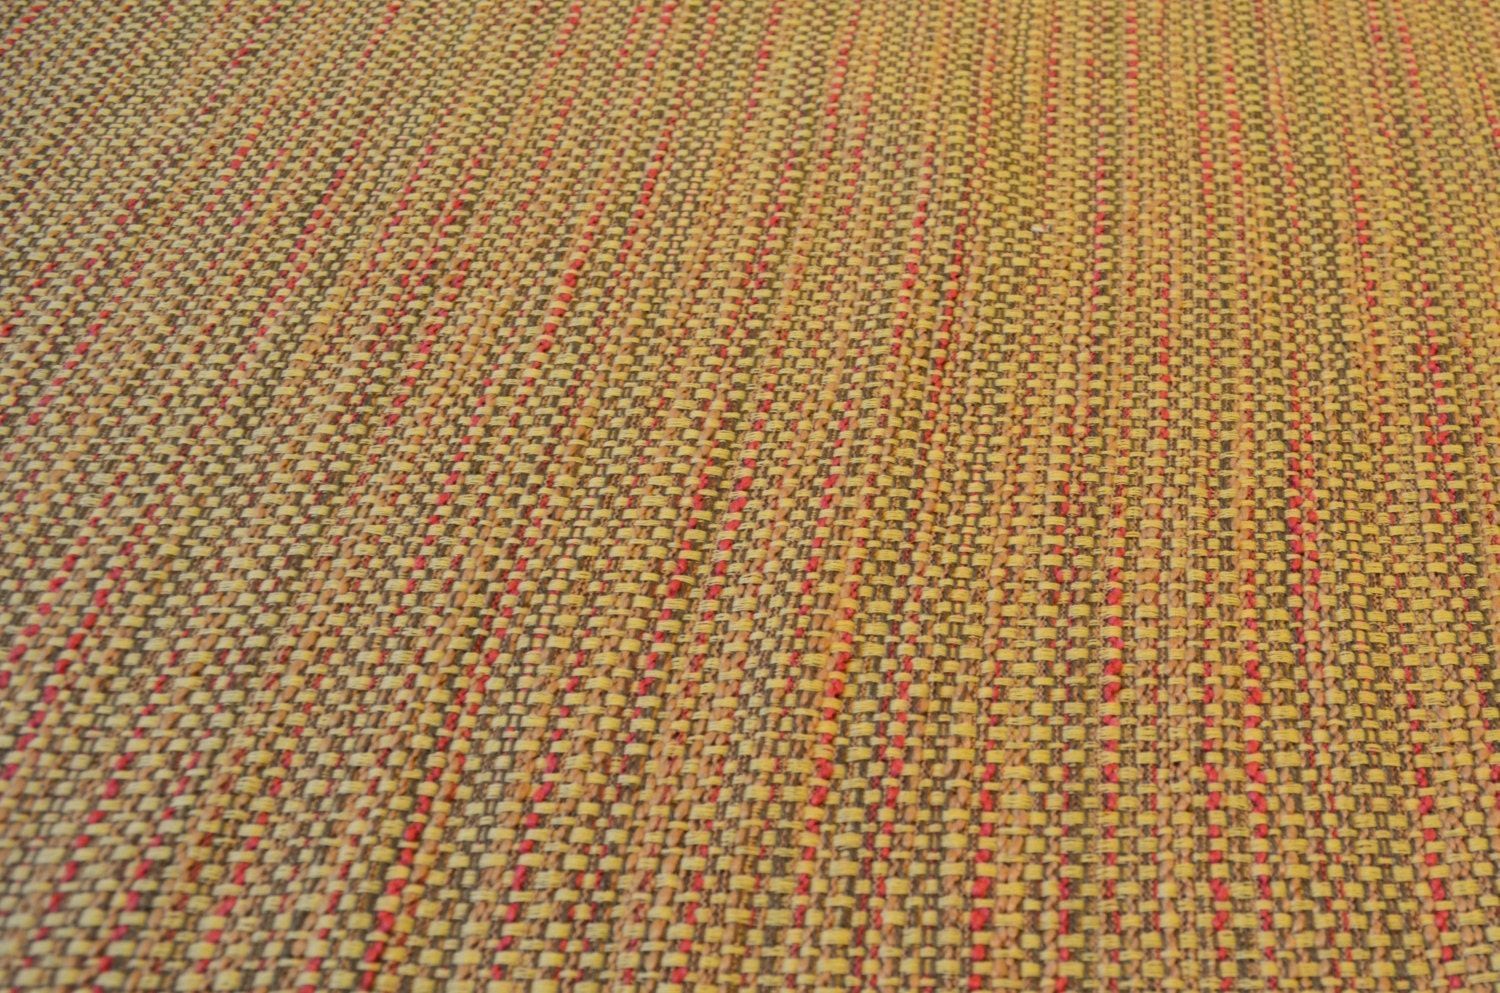 Tweed Style Upholstery Fabric - Heavy Weight - Cream Red Brown ...